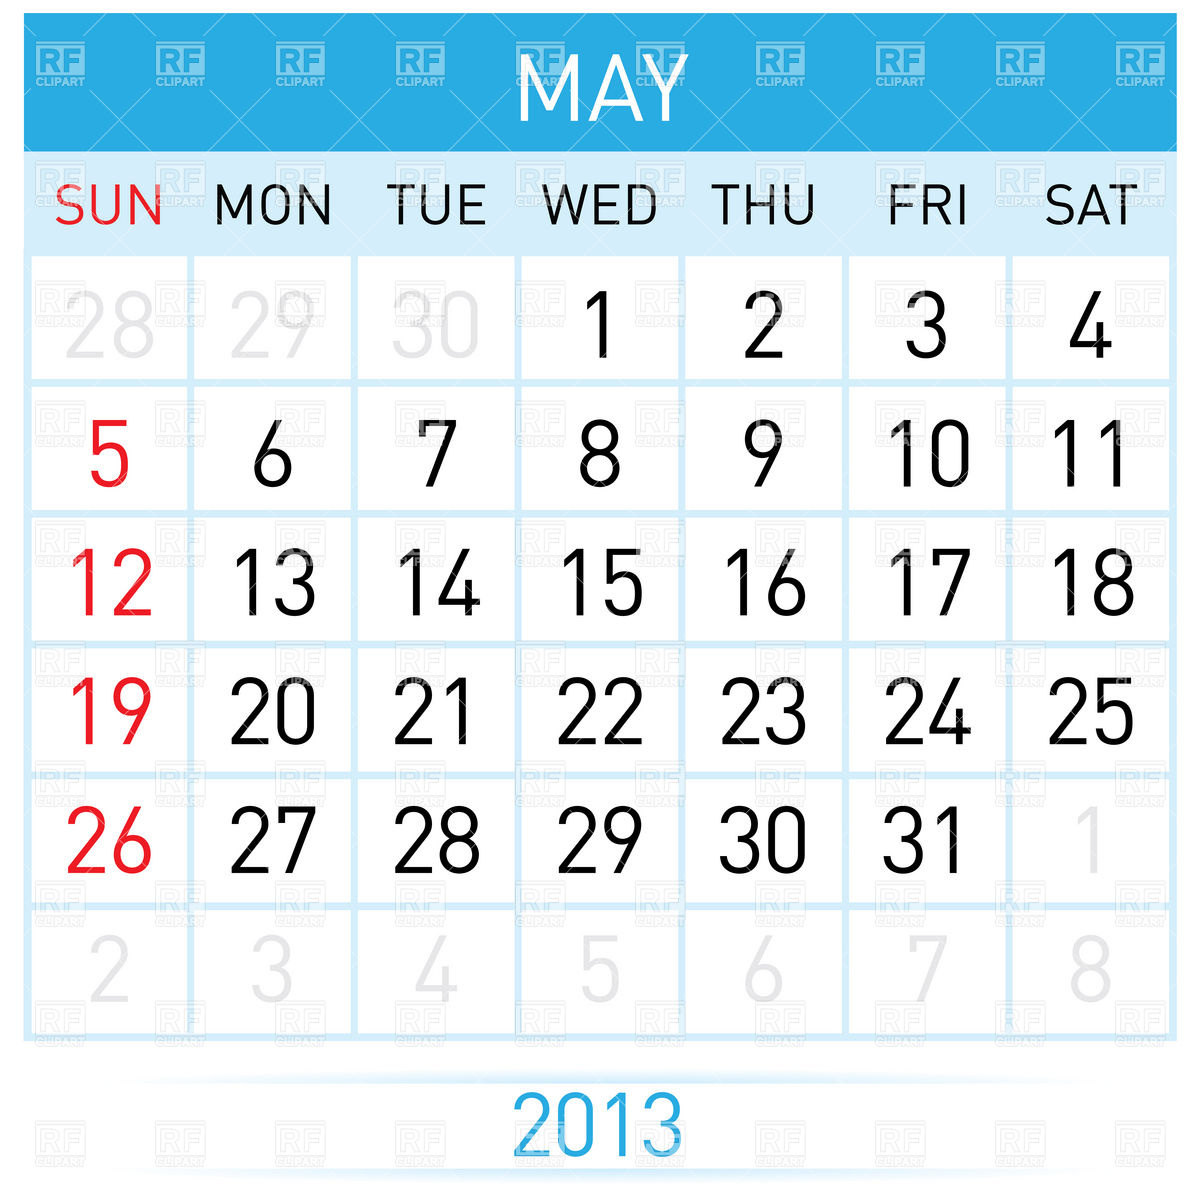 May 2013 month calendar Vector Image #7017 – RFclipart clip library library